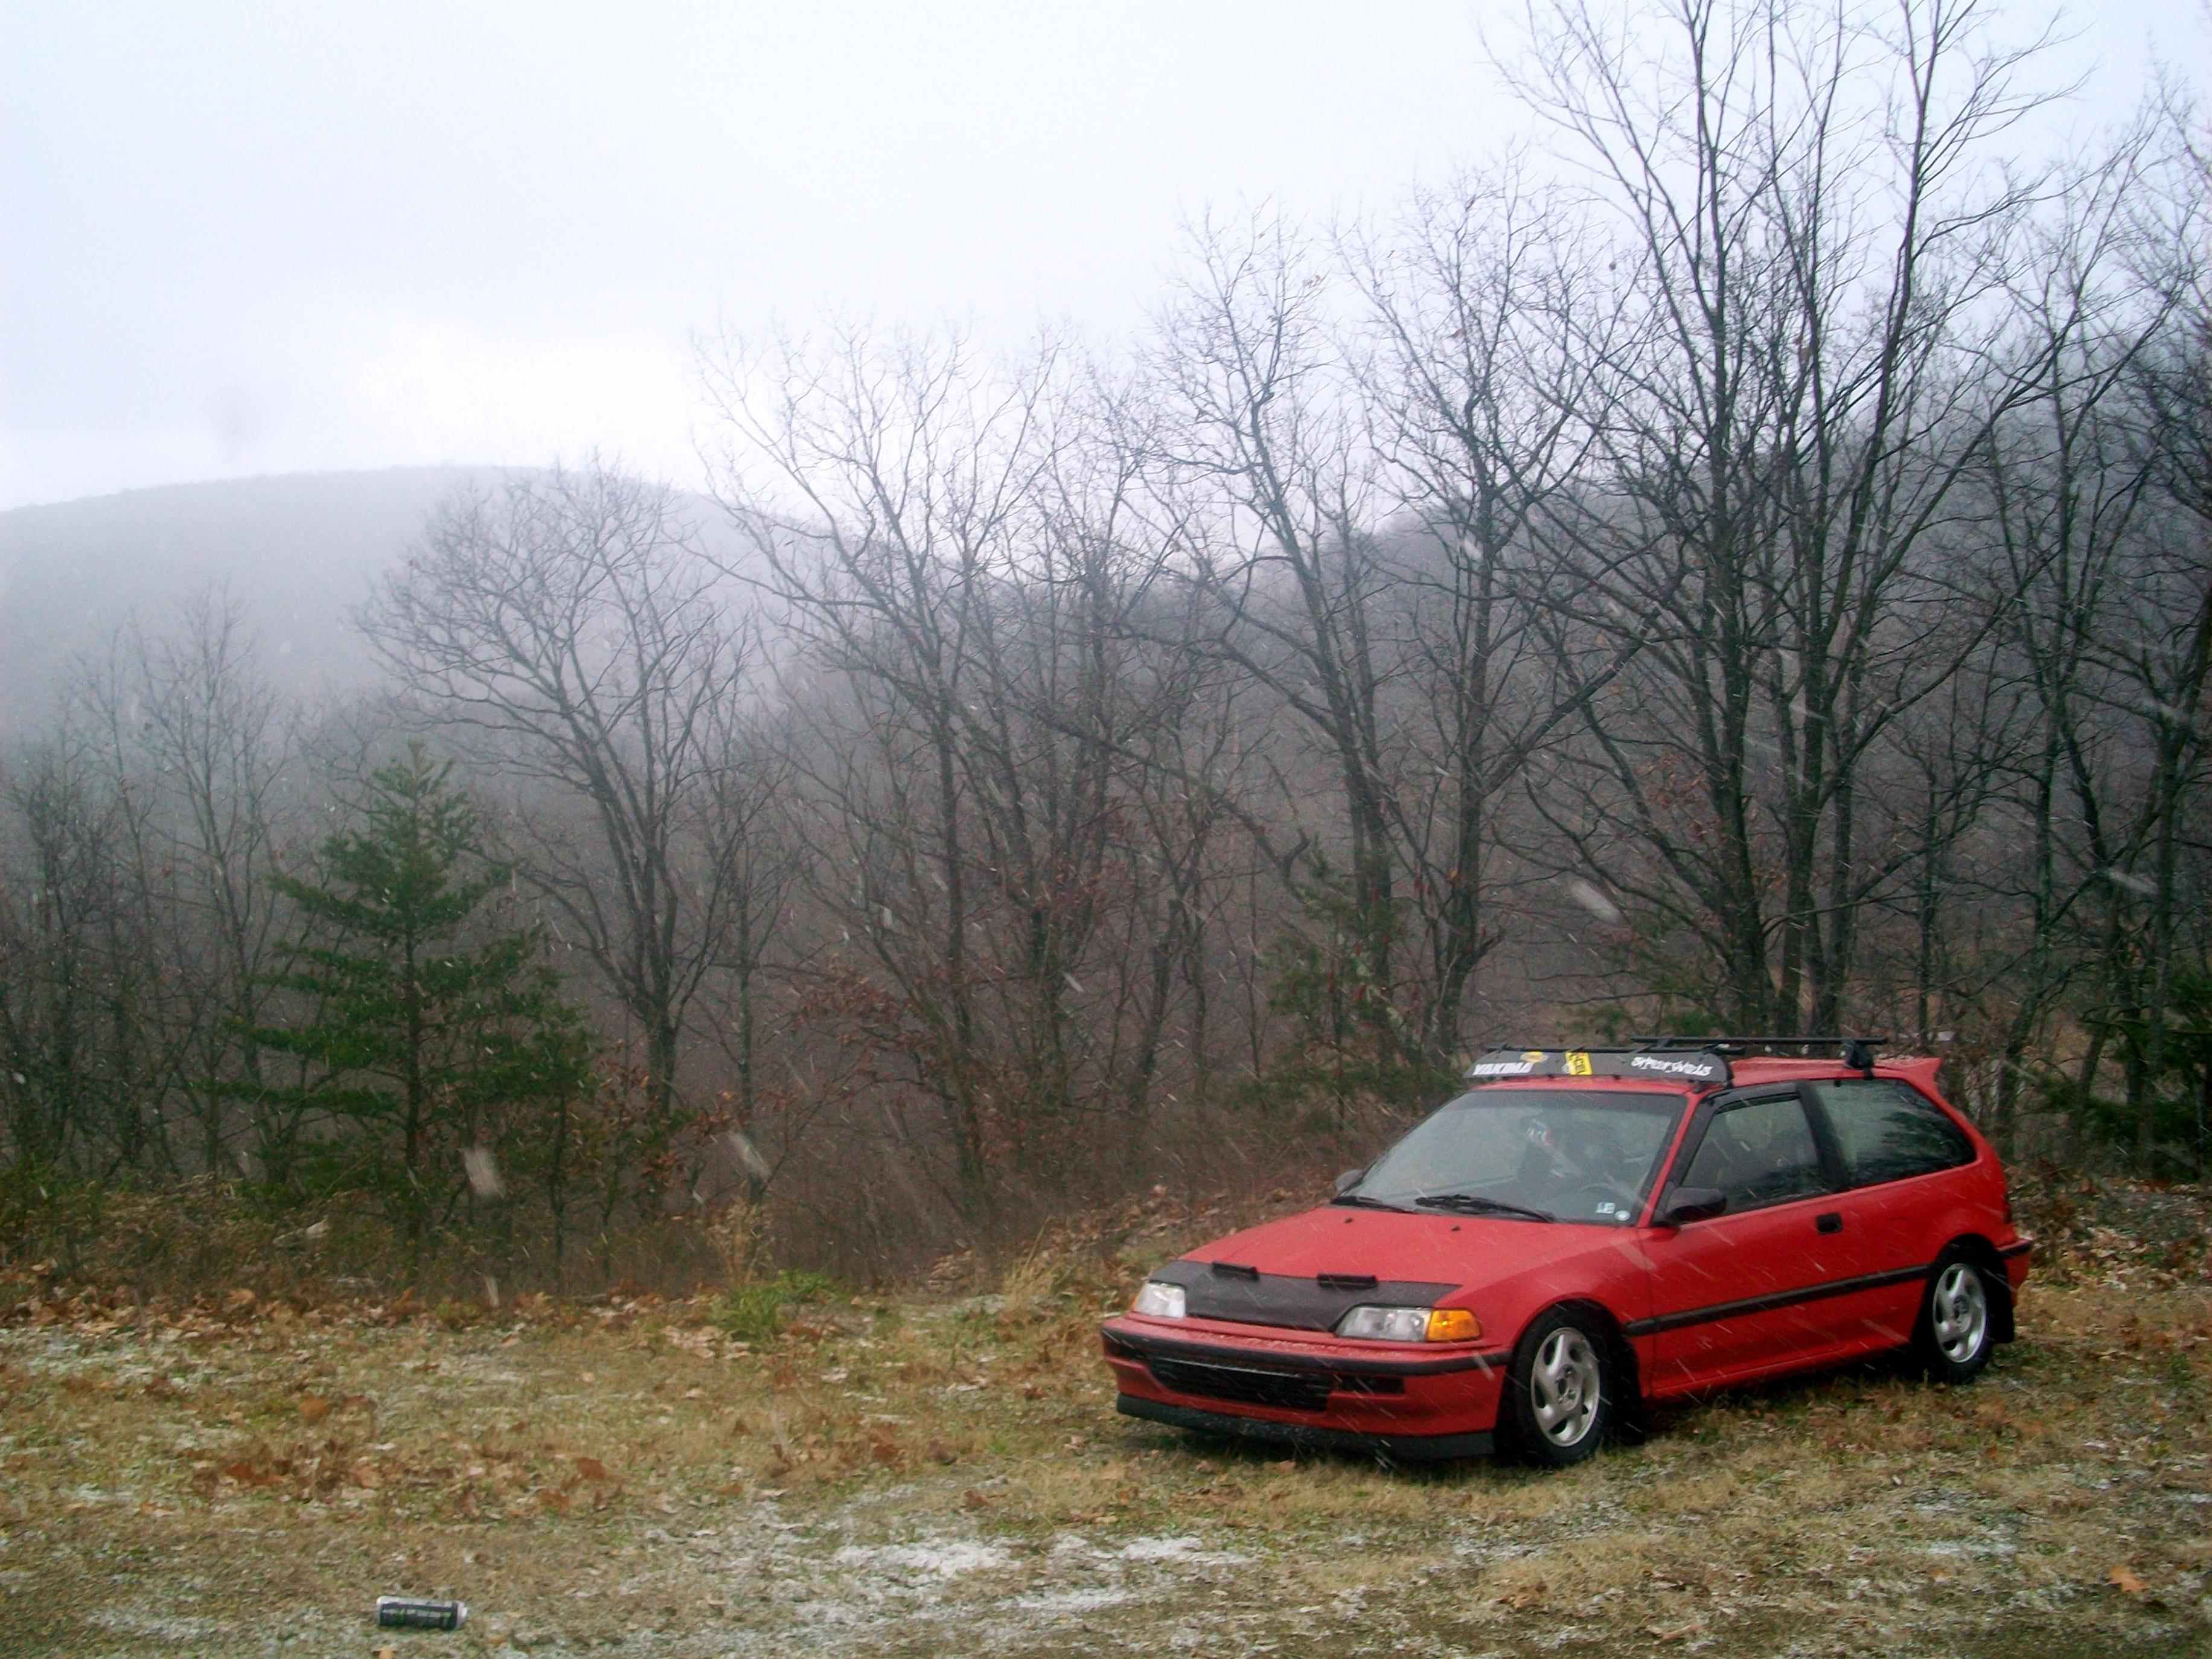 ef9civichatch's 1991 Honda Civic